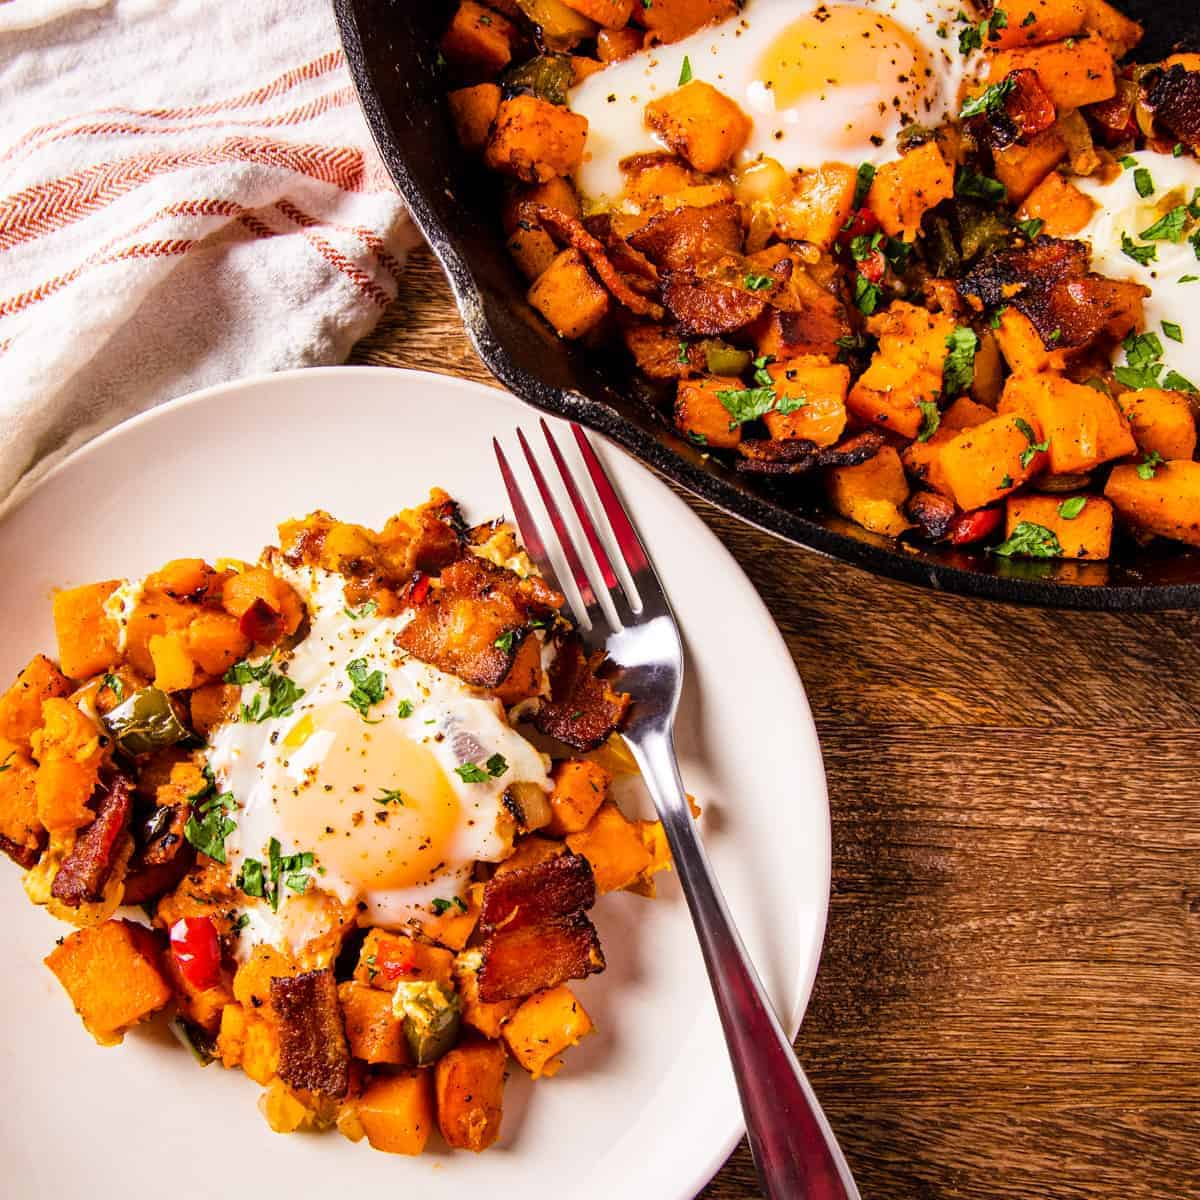 Sweet potatoes with eggs and bacon, served on a dish set next to a cast iron skillet.